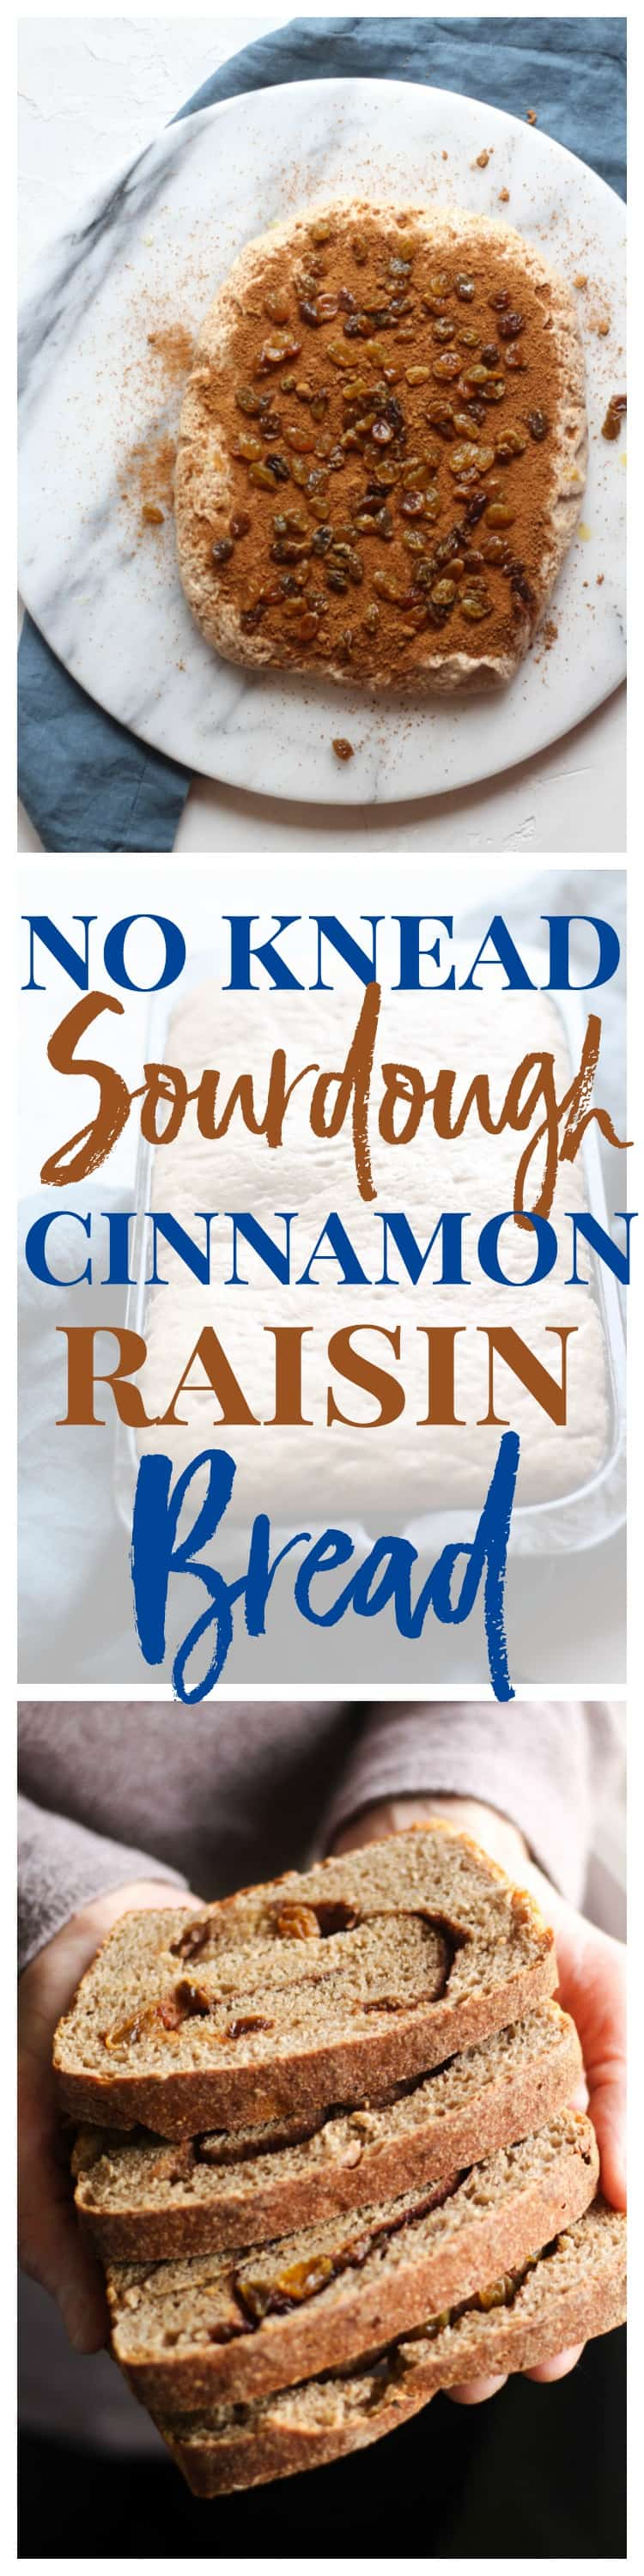 This no knead cinnamon raisin bread